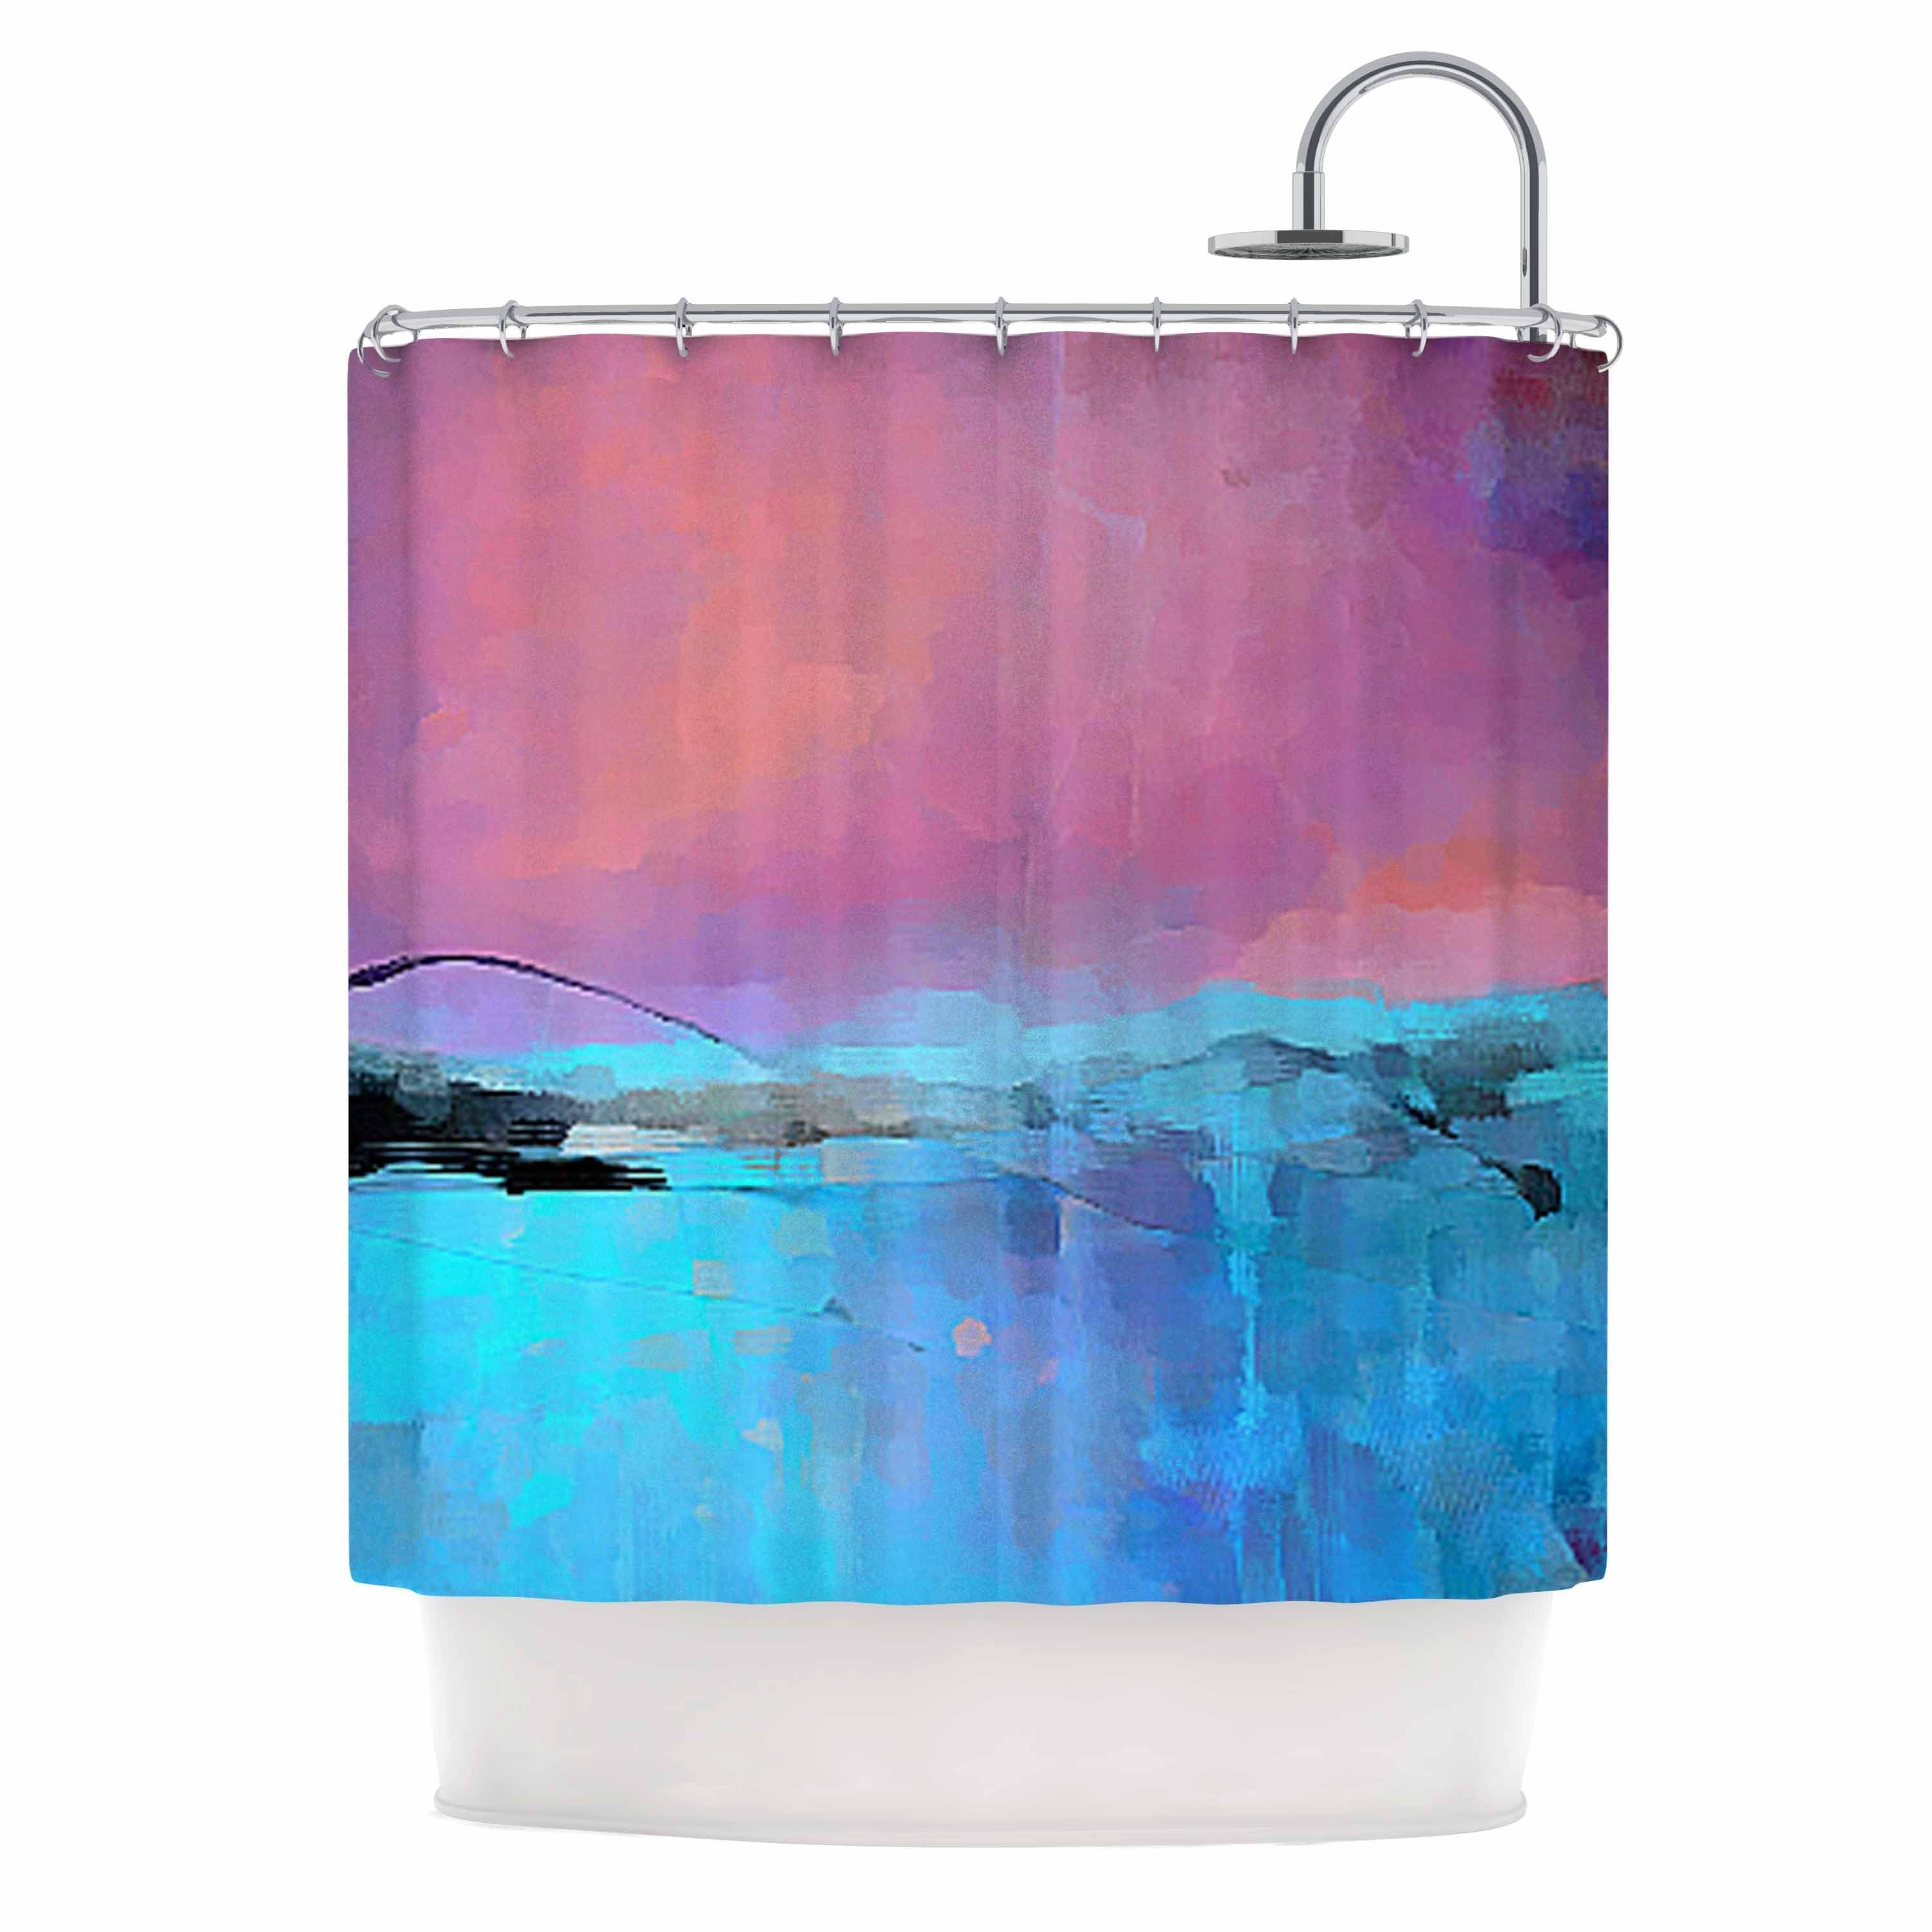 afe diamond shower pattern illustration curtains pink curtain digital tiles blue from images kess pin